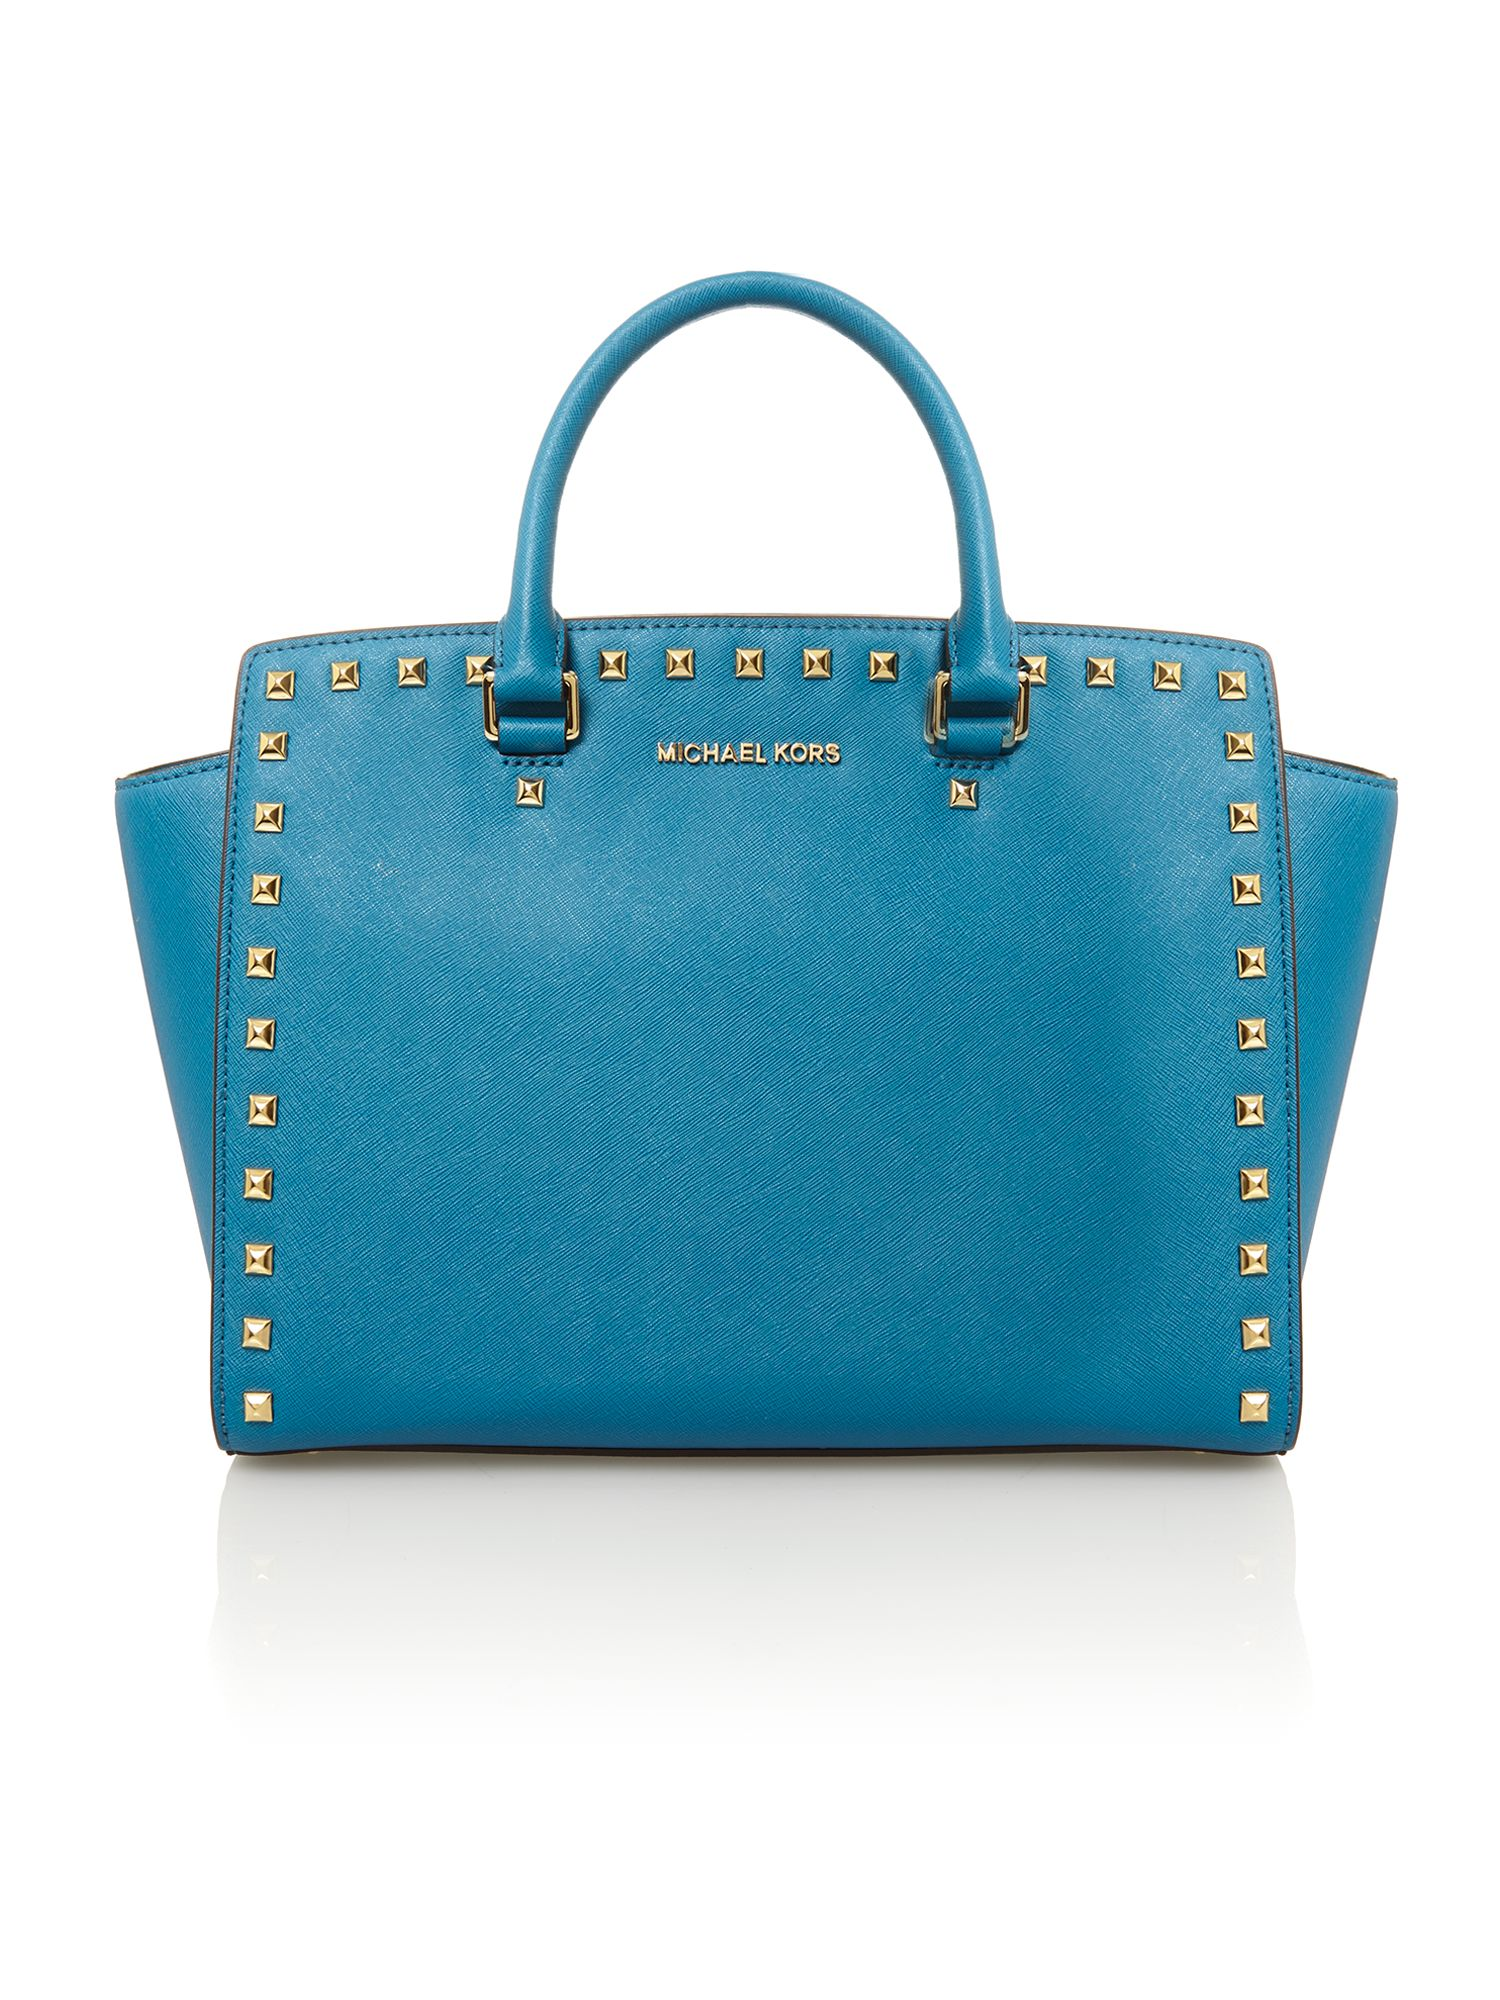 Selma stud blue tote bag